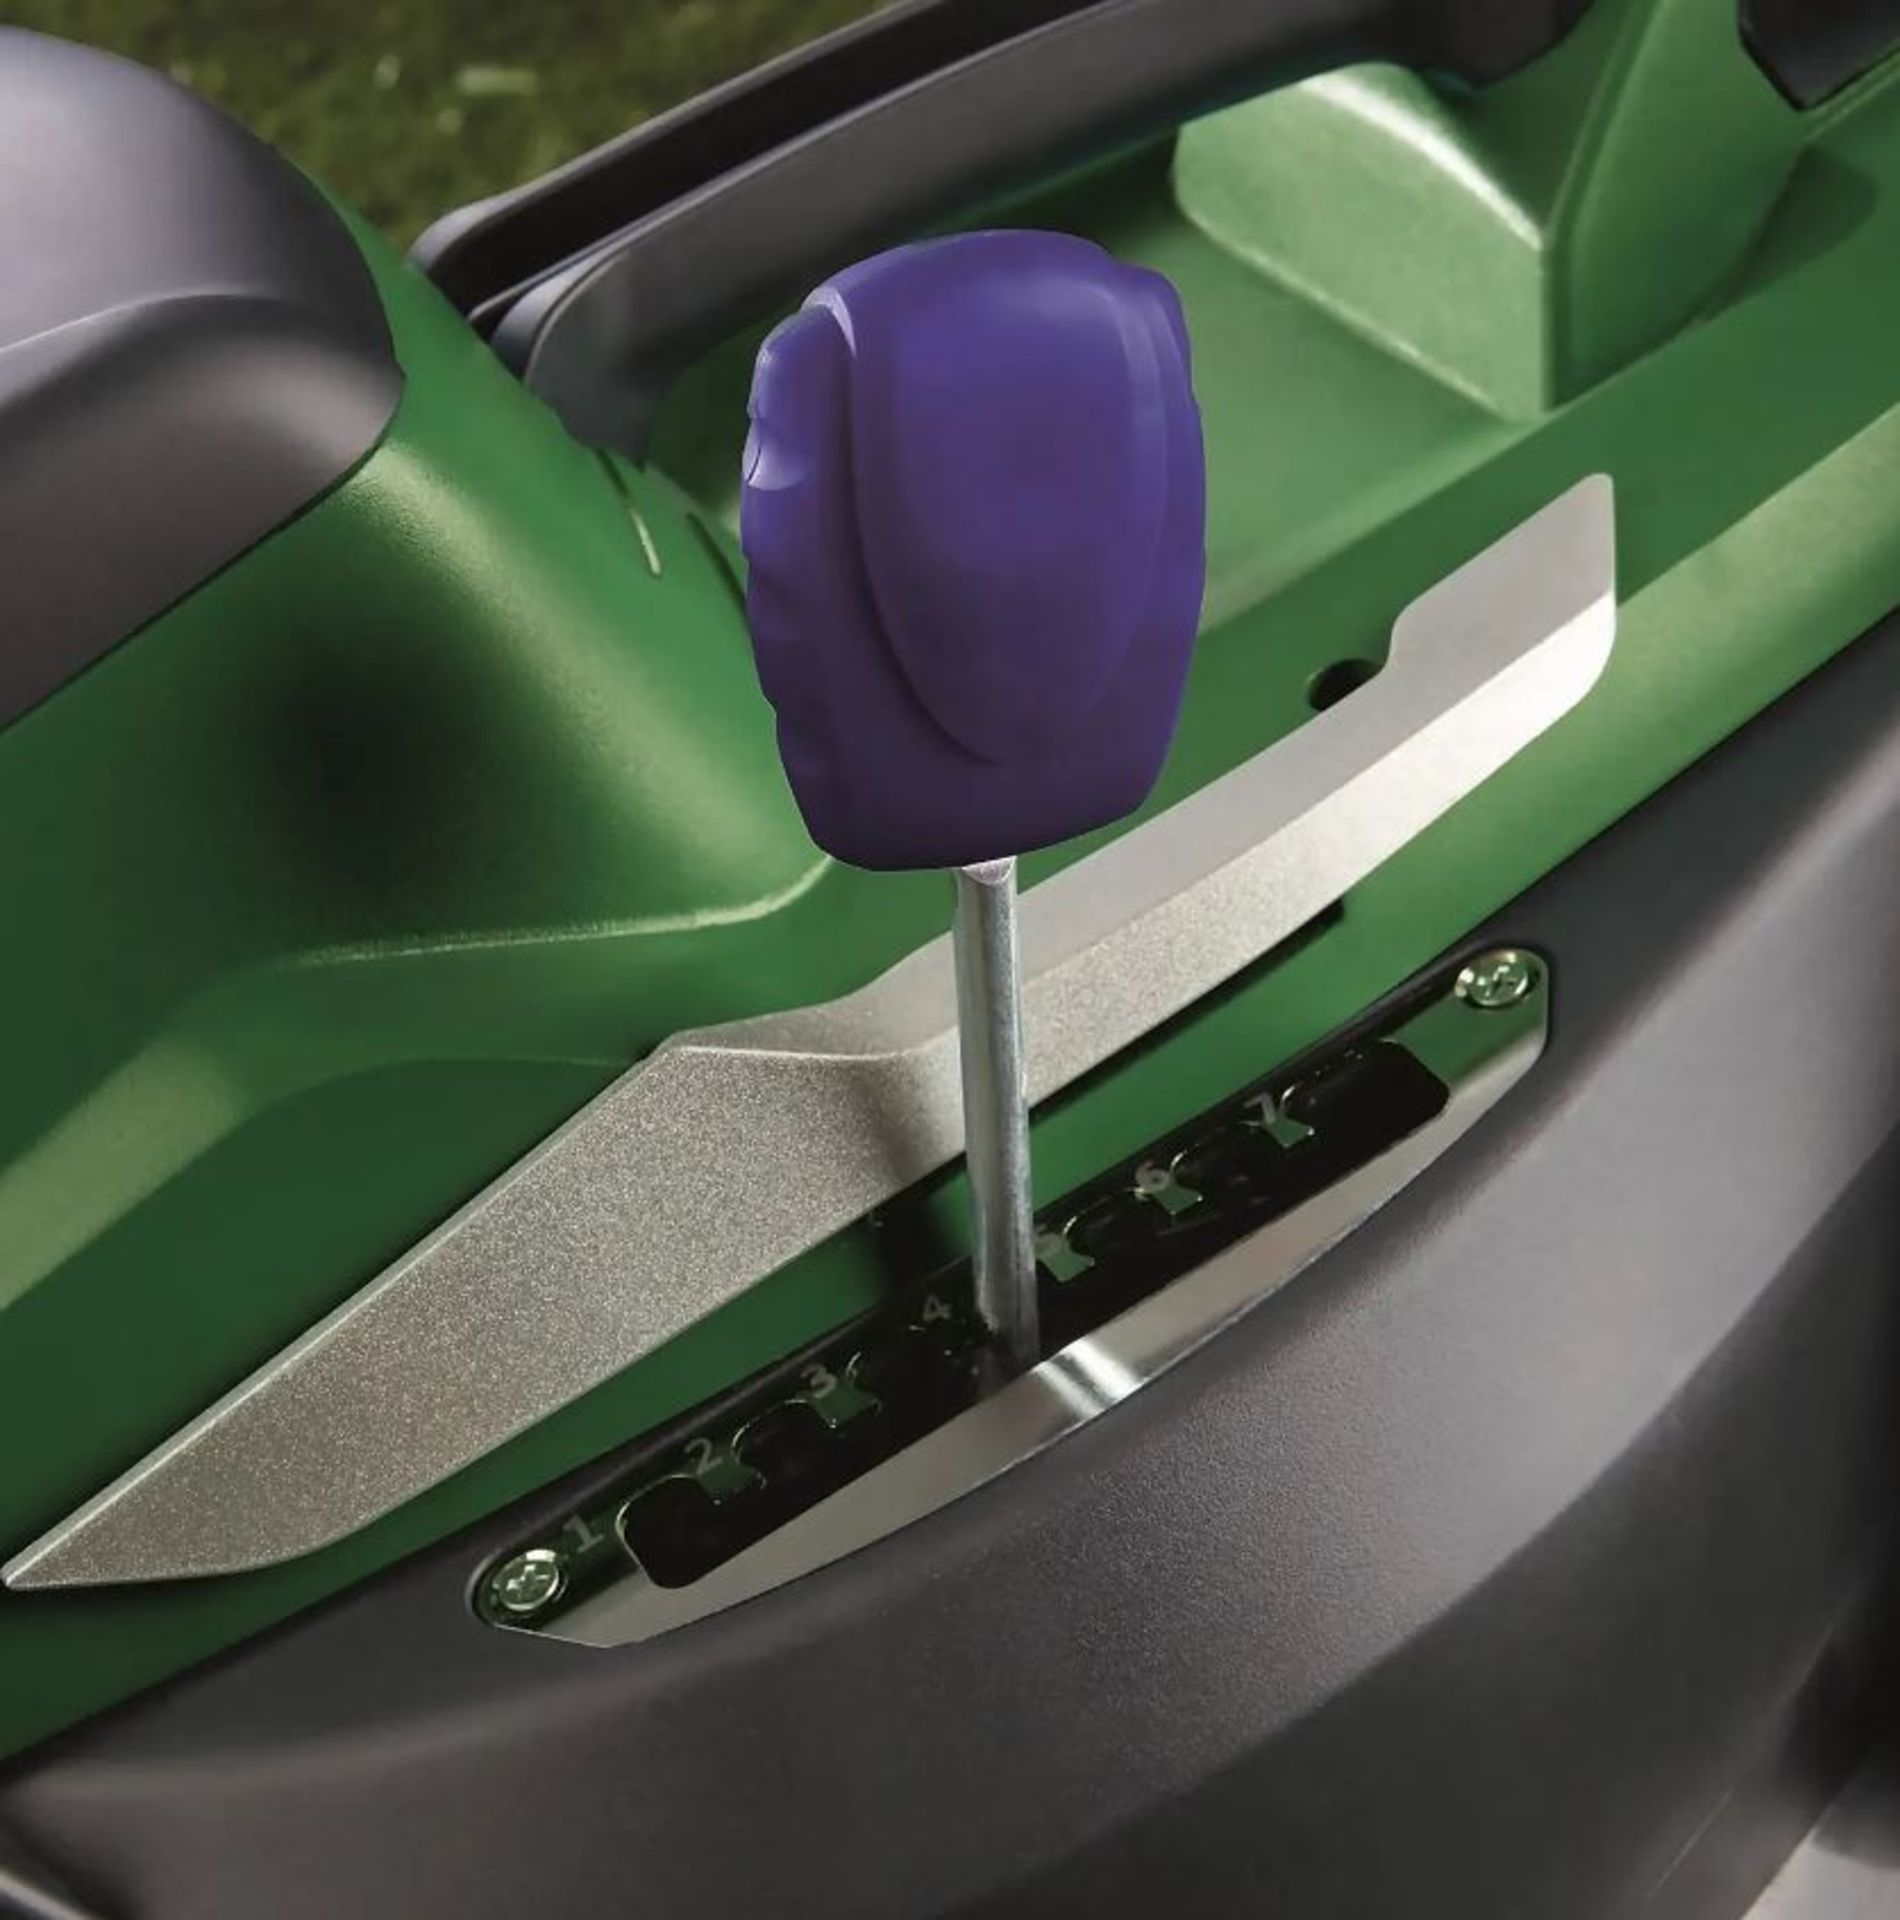 (P9) 1x Powerbase 37cm 40V Cordless Lawn Mower. RRP £199.00. Unit Appears Clean, As New & Unused. - Image 2 of 5